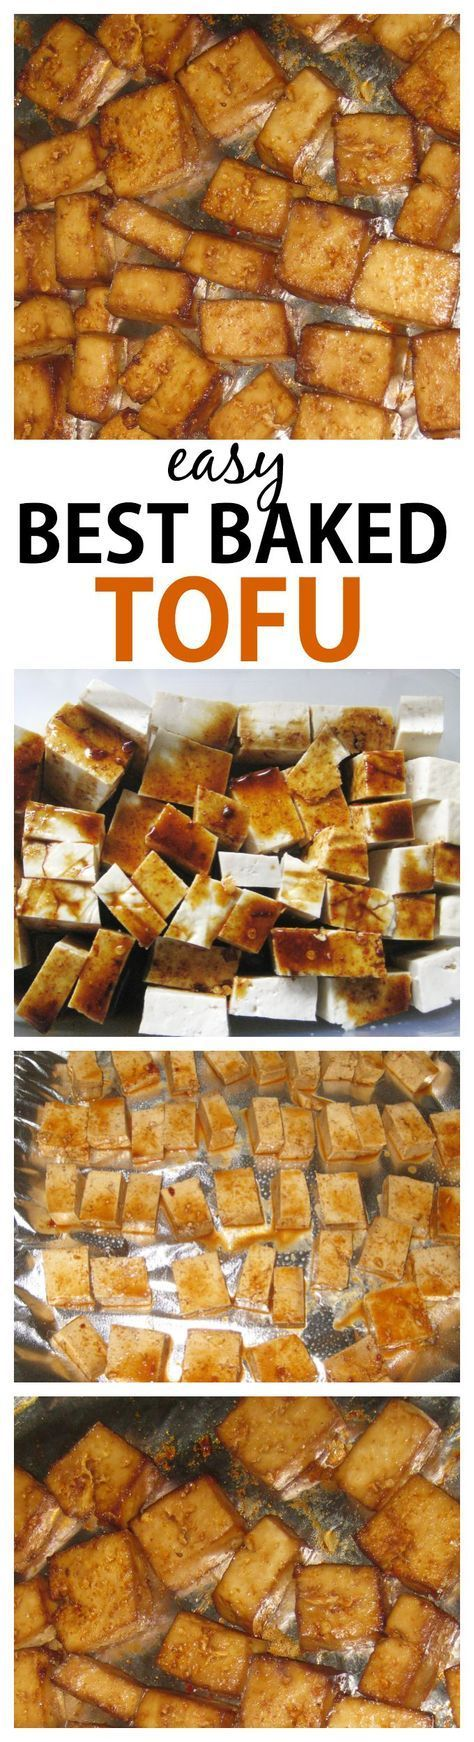 Hands down, the best (and easiest!) baked tofu ever- A delicious marinade and co…